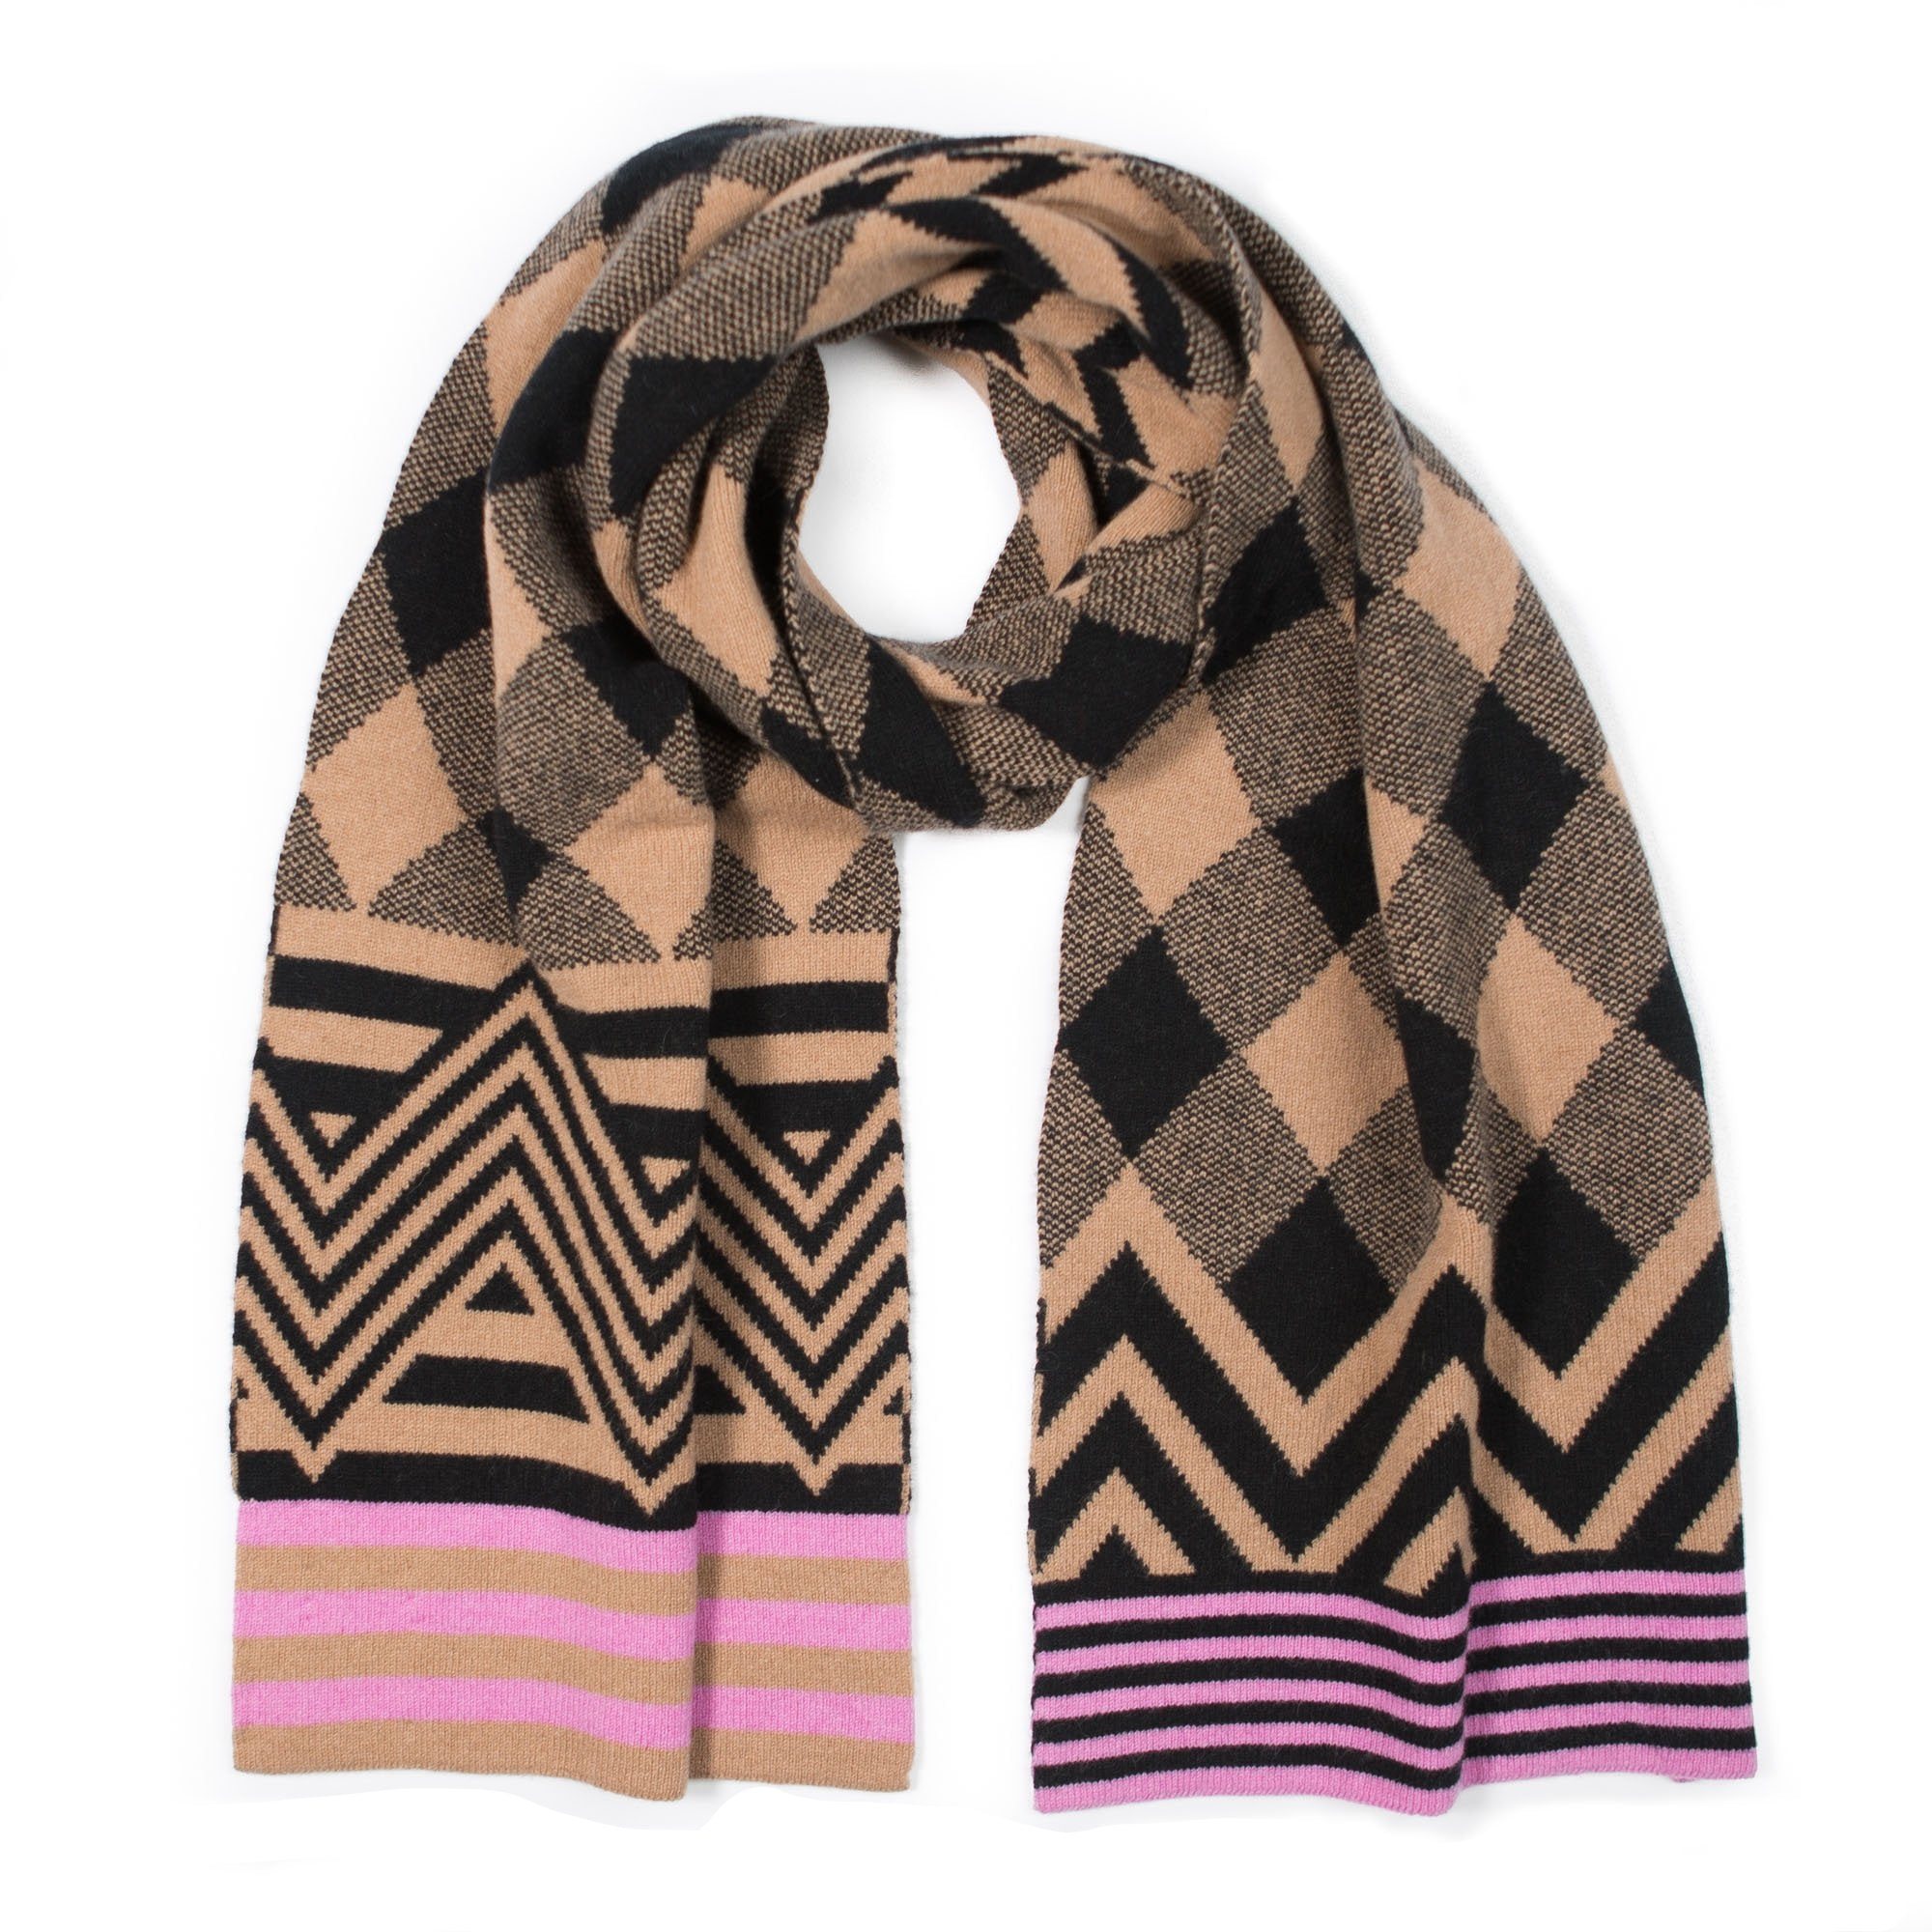 ARGYLE BLANKET SCARF CAMEL & BLACK - GREEN THOMAS